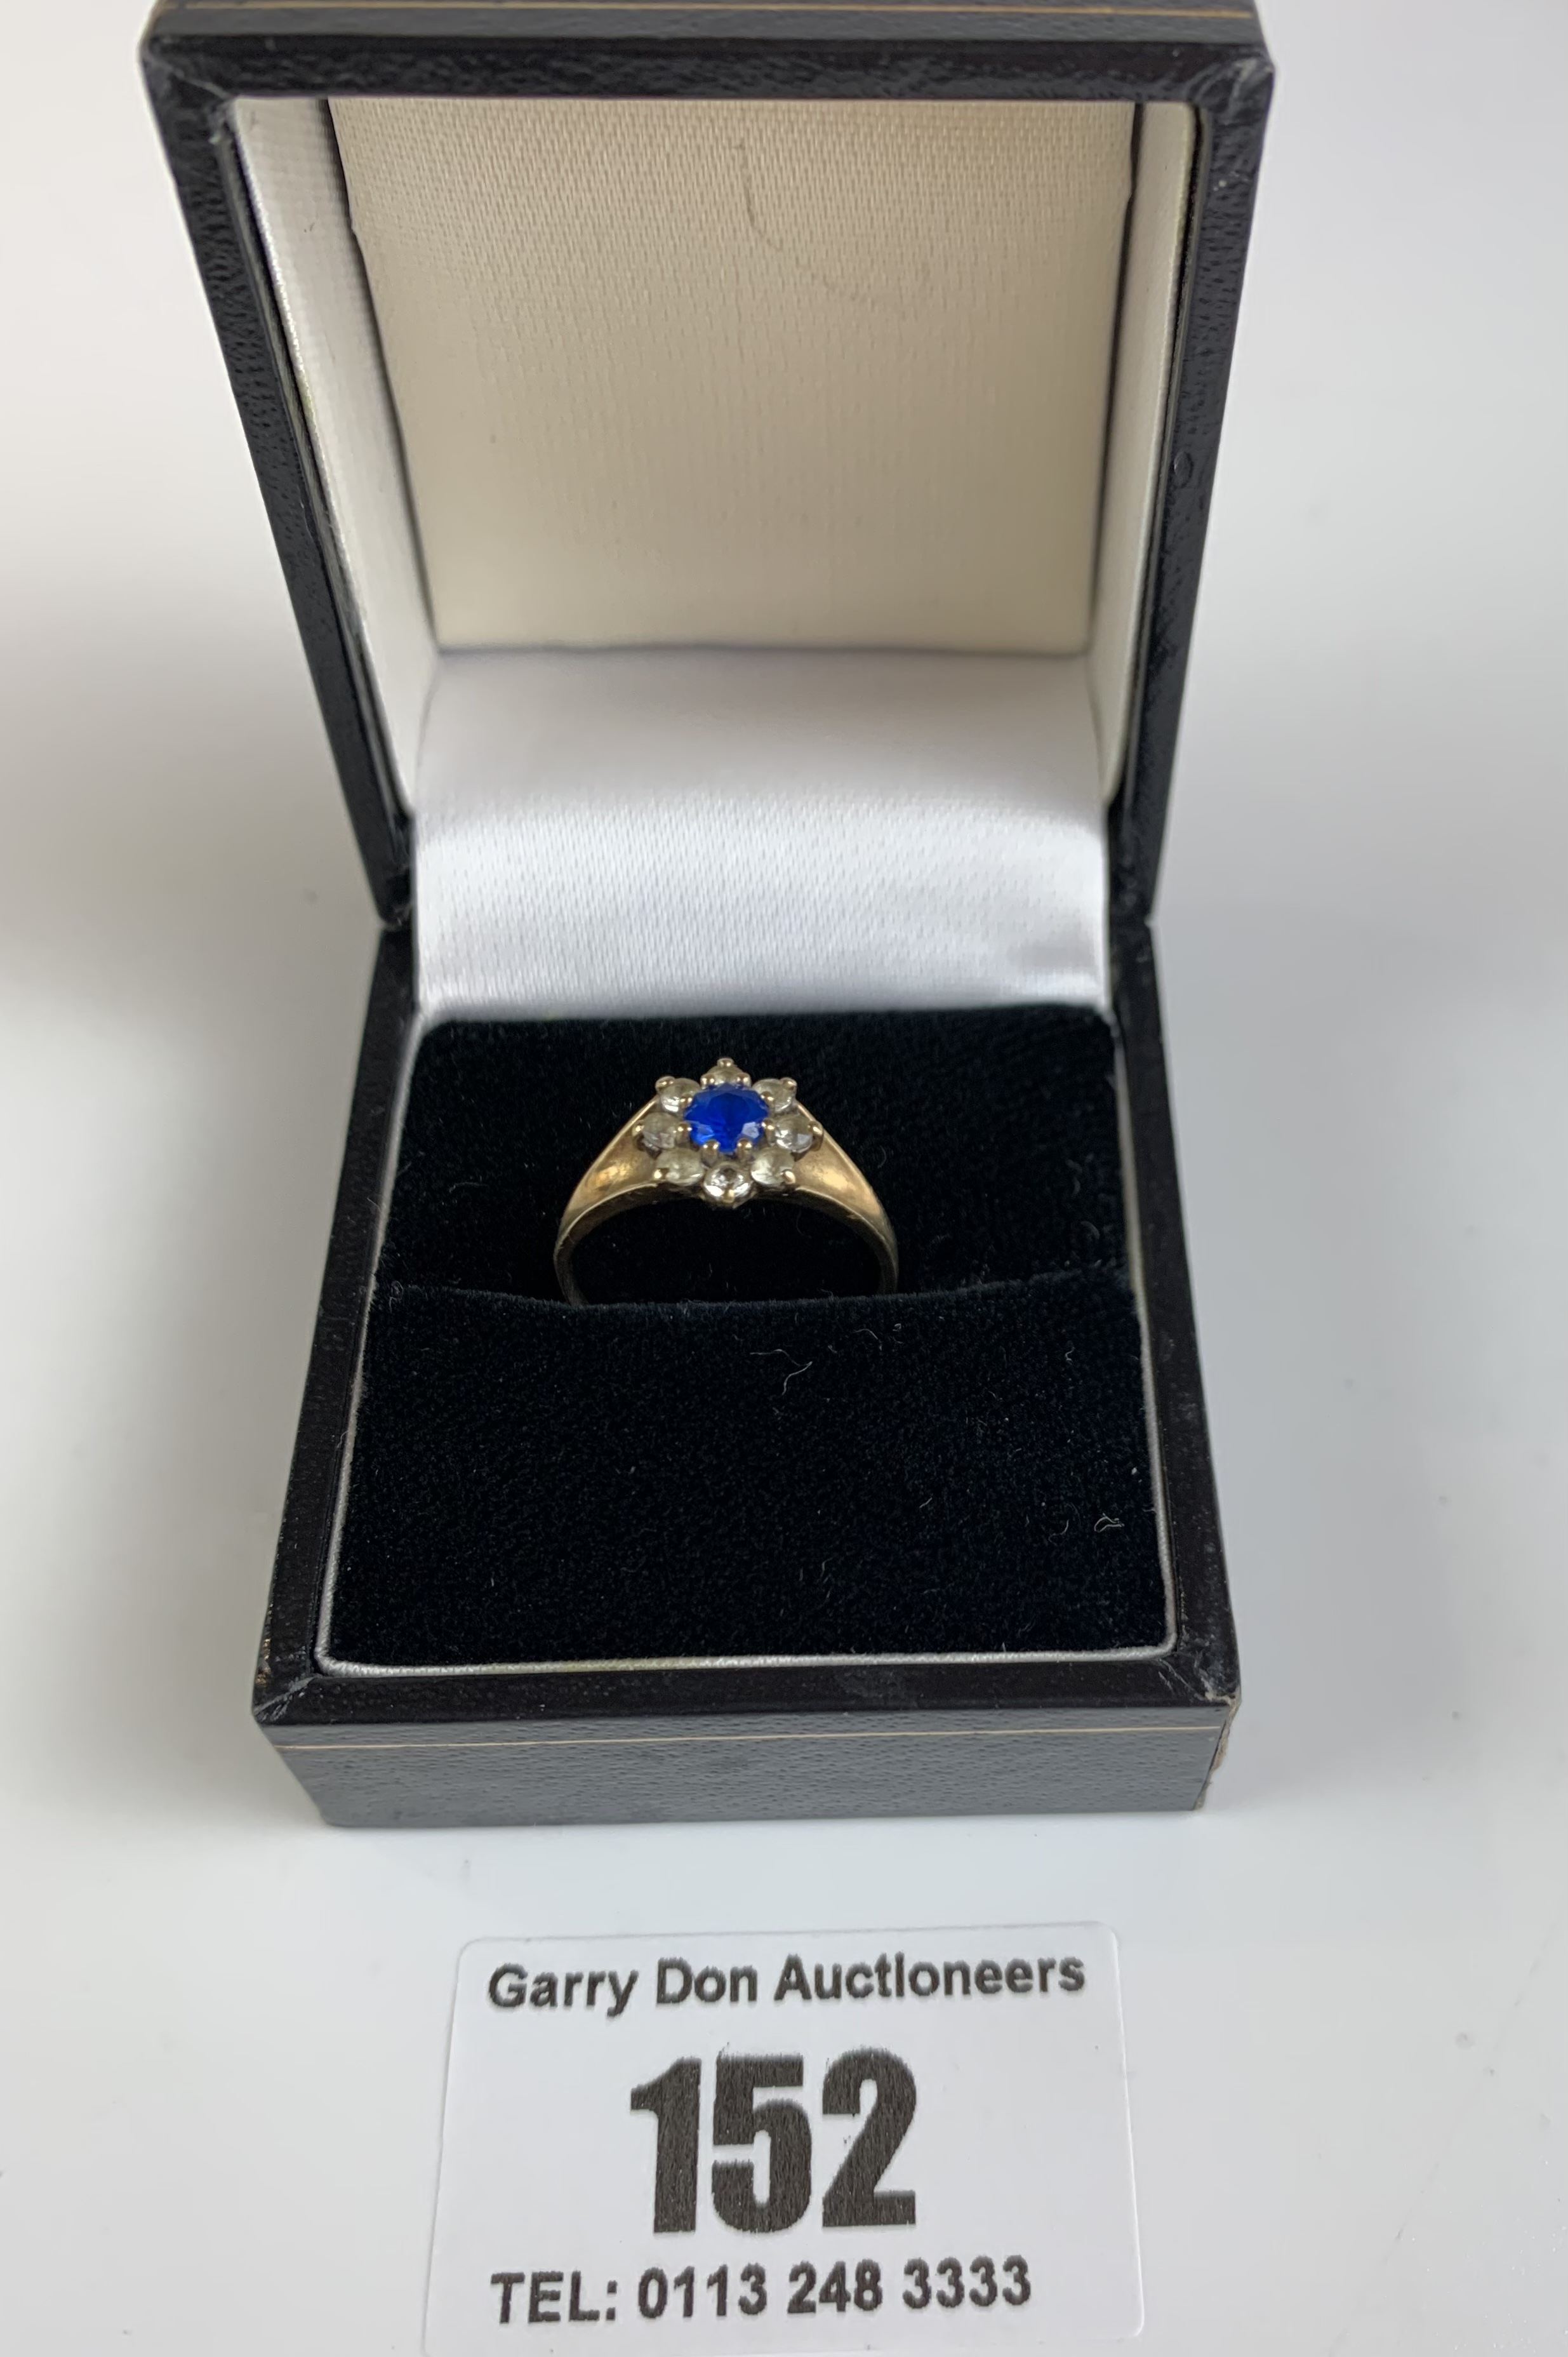 9k gold ring with blue and white stones, size K/L, w: 2 gms - Image 3 of 5